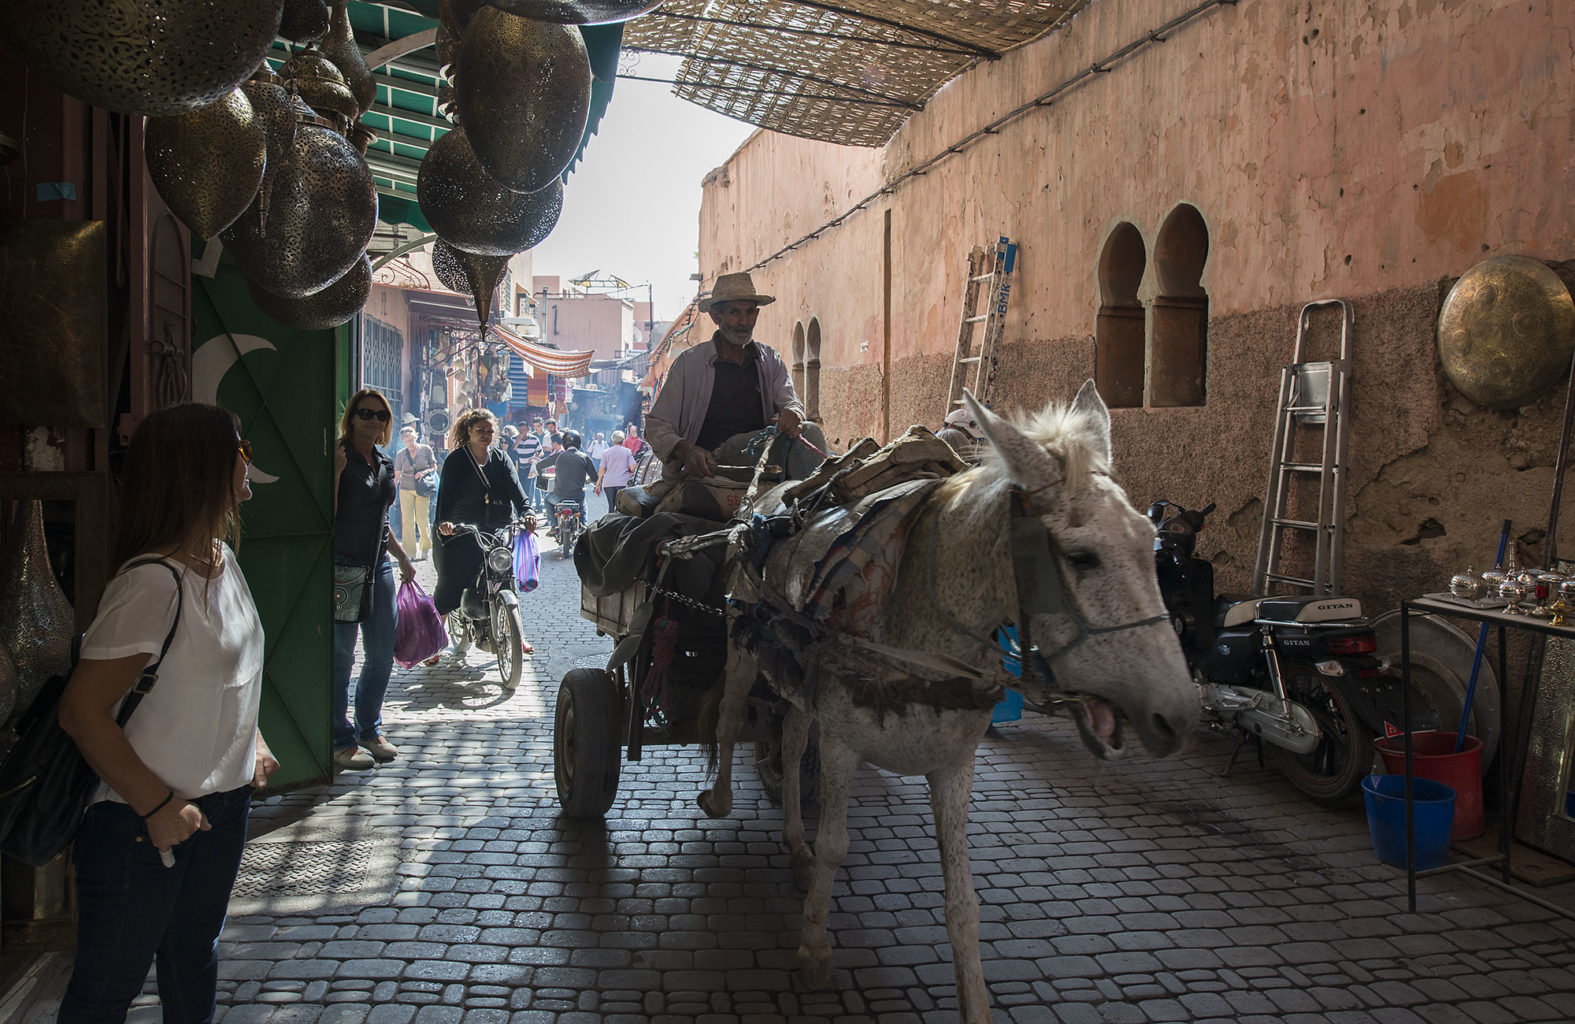 Donkey work force in Morocco